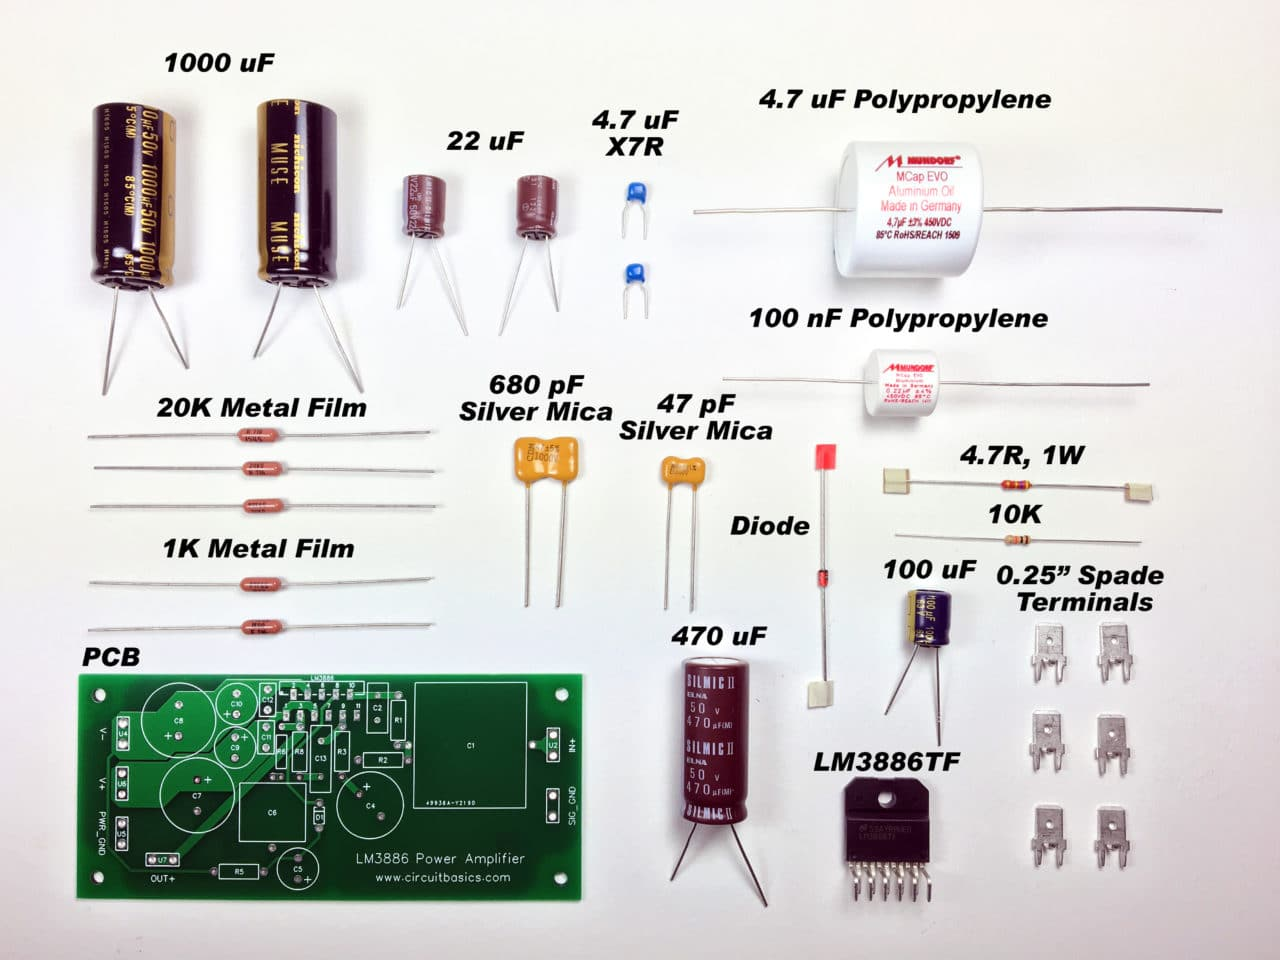 A Complete Guide To Design And Build Hi Fi Lm3886 Amplifier Application Circuits Explained In Simple Words Homemade Circuit The Total Cost Came About 118 For Both Channels Not Including Chassis Power Supply Wiring Parts You Can It Lot Less With Cheaper